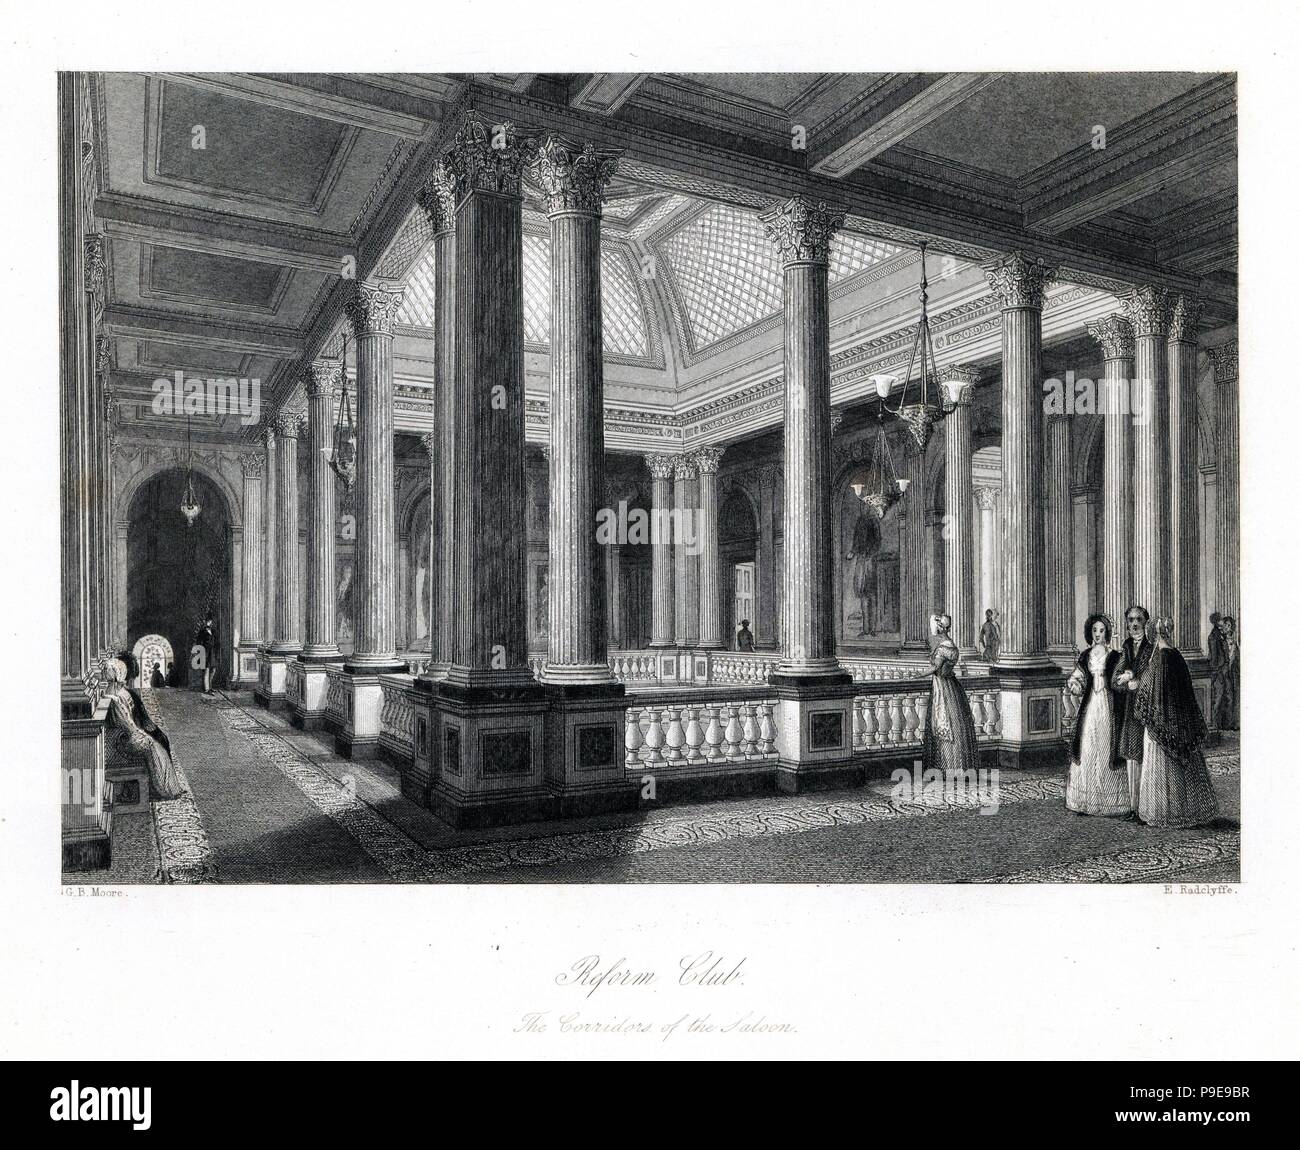 The Saloon in the Reform Club, with its Ionic columns, tesselated pavement, vaulted skylight and Scagliola covered walls. Steel engraving by E. Radclyffe after an illustration by G.B. Moore from London Interiors, Their Costumes and Ceremonies, Joshua Mead, London, 1841. - Stock Image